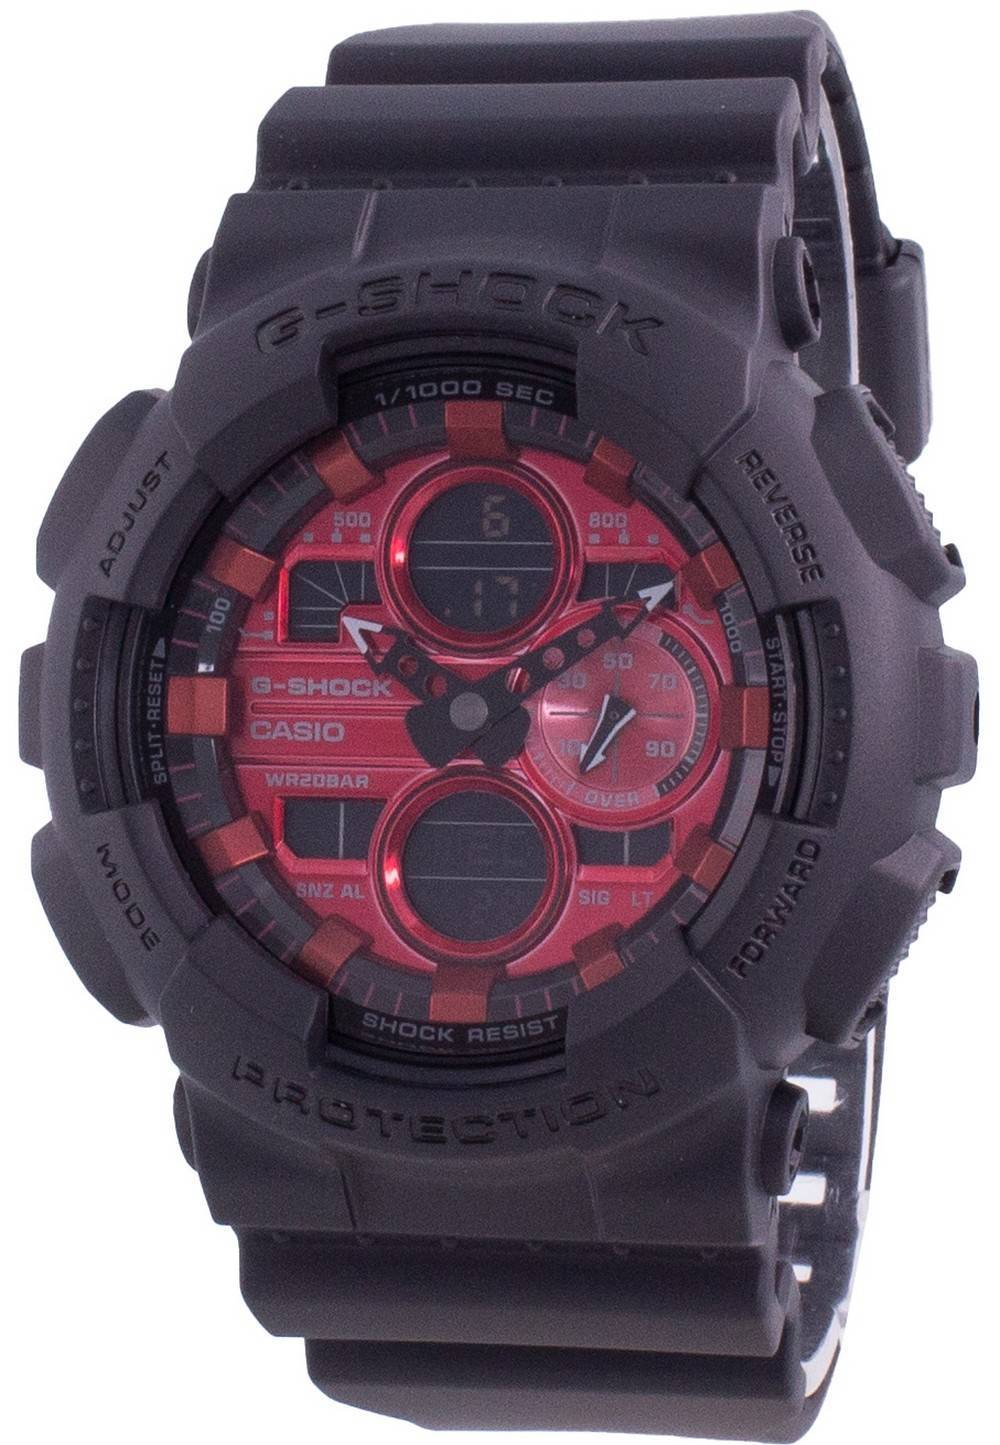 G-Shock GA-140AR-1A Quartz Shock Resistant 200M Men's Watch